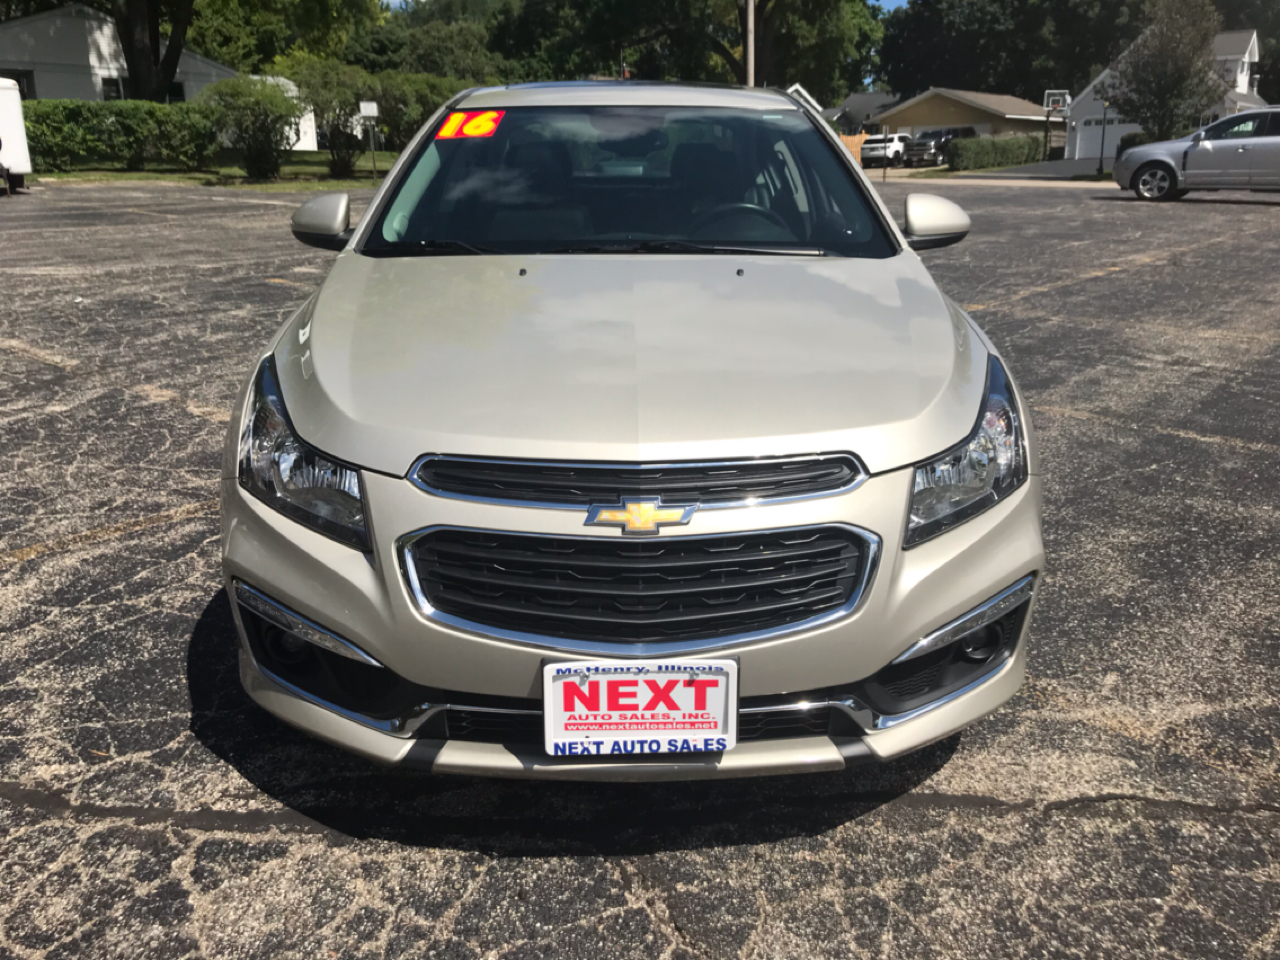 Chevrolet Cruze Limited 4dr Sdn LTZ 2016